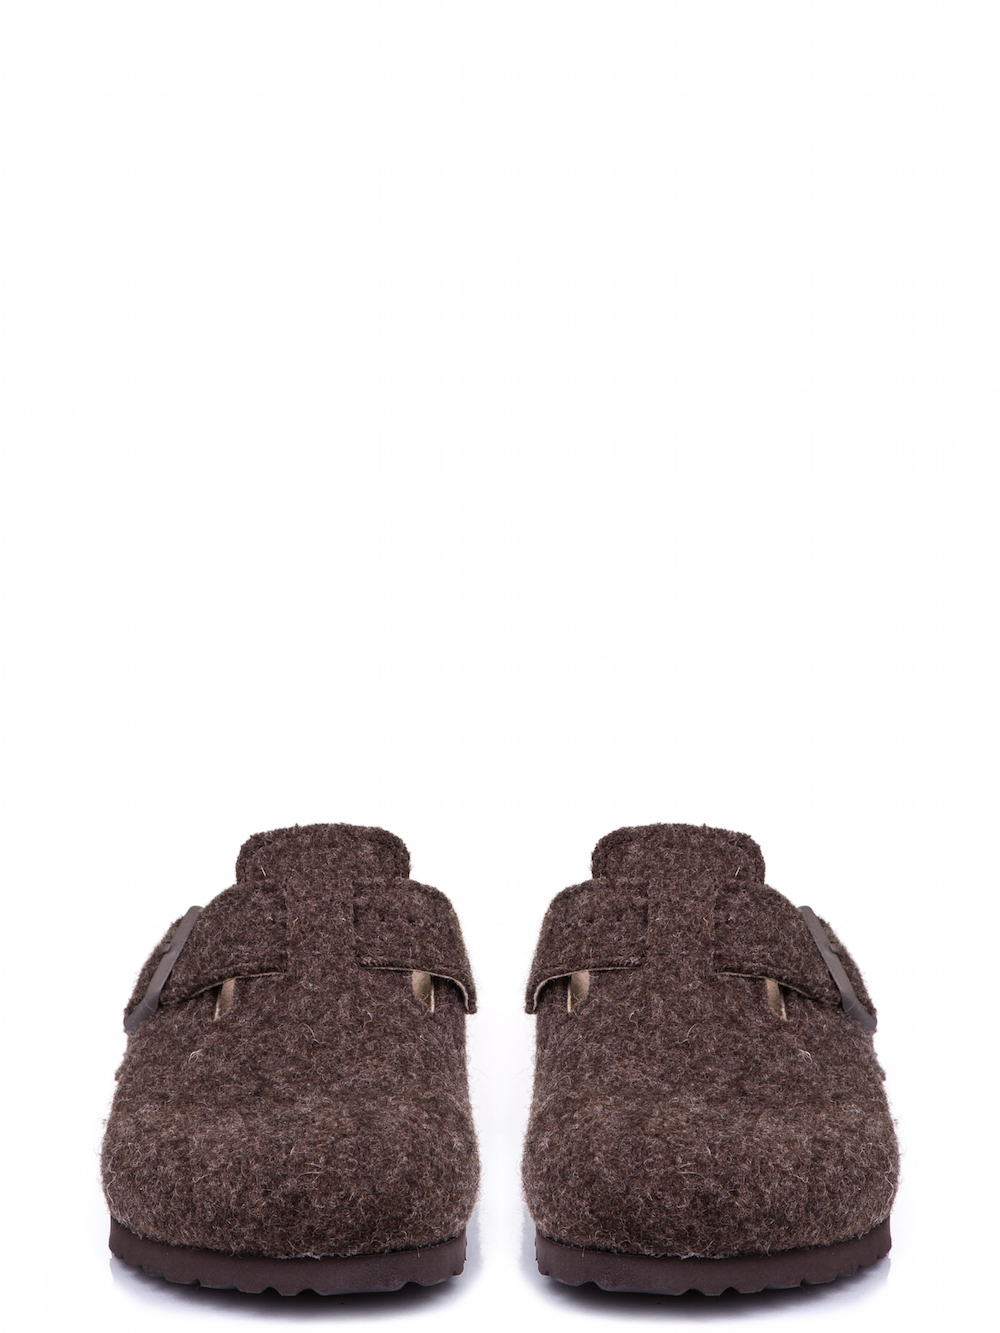 RICK OWENS X BIRKENSTOCK BOSTON CLOG IN BROWN FEATURE A WOOL FELT